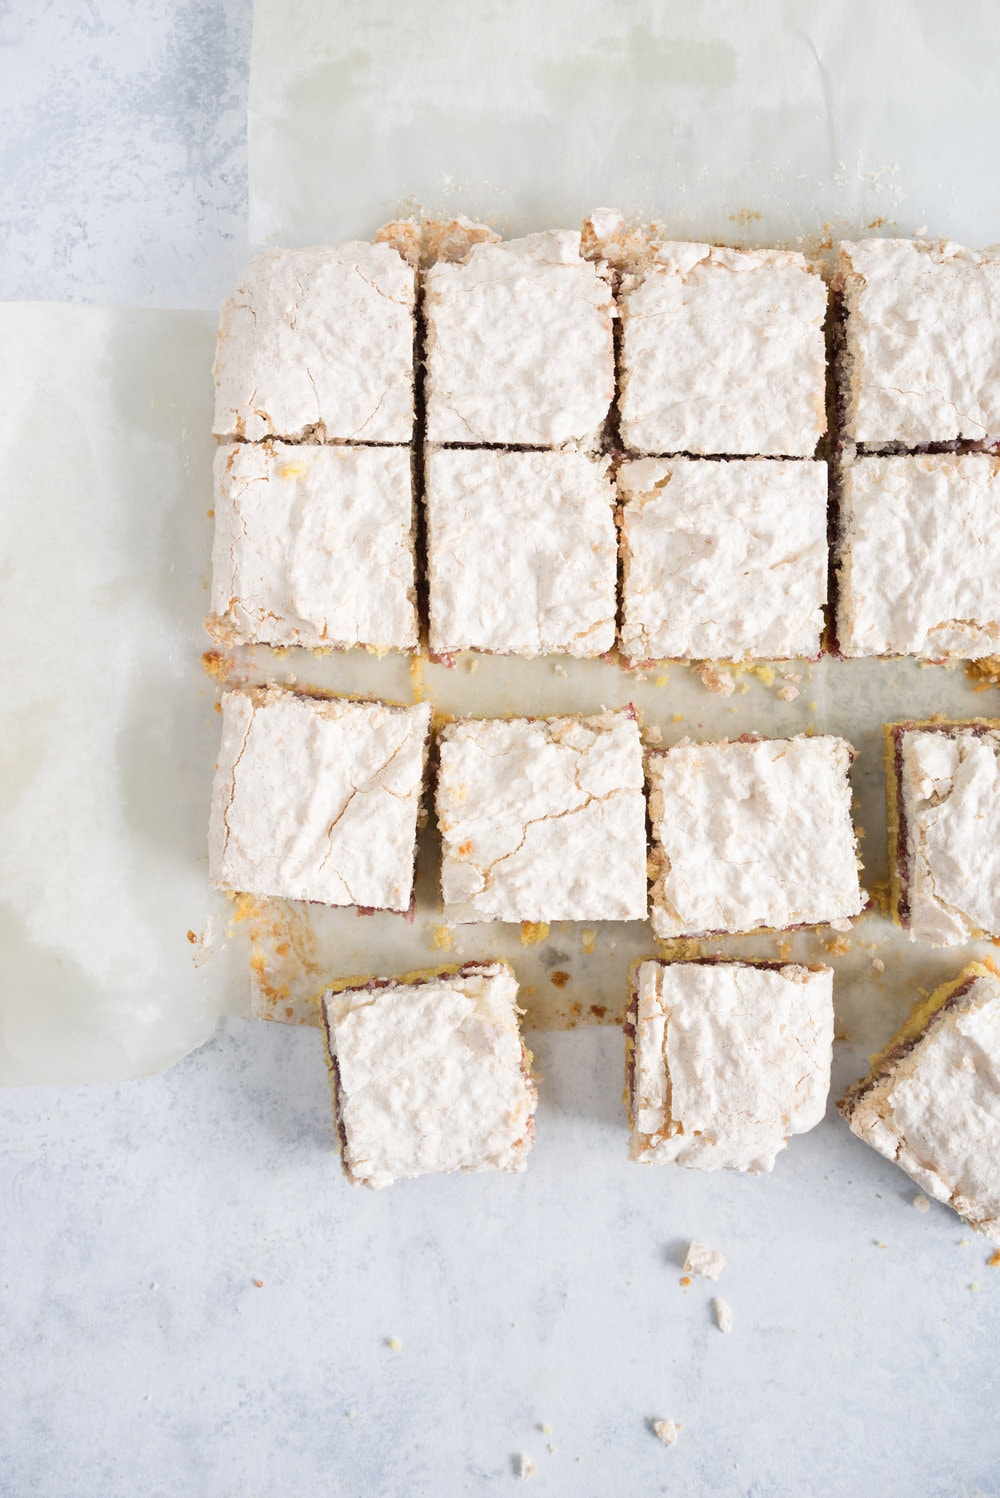 Louise cake - shortbread base spread with a raspberry jam layer then topped with a coconut meringue. The perfect afternoon tea accompaniment